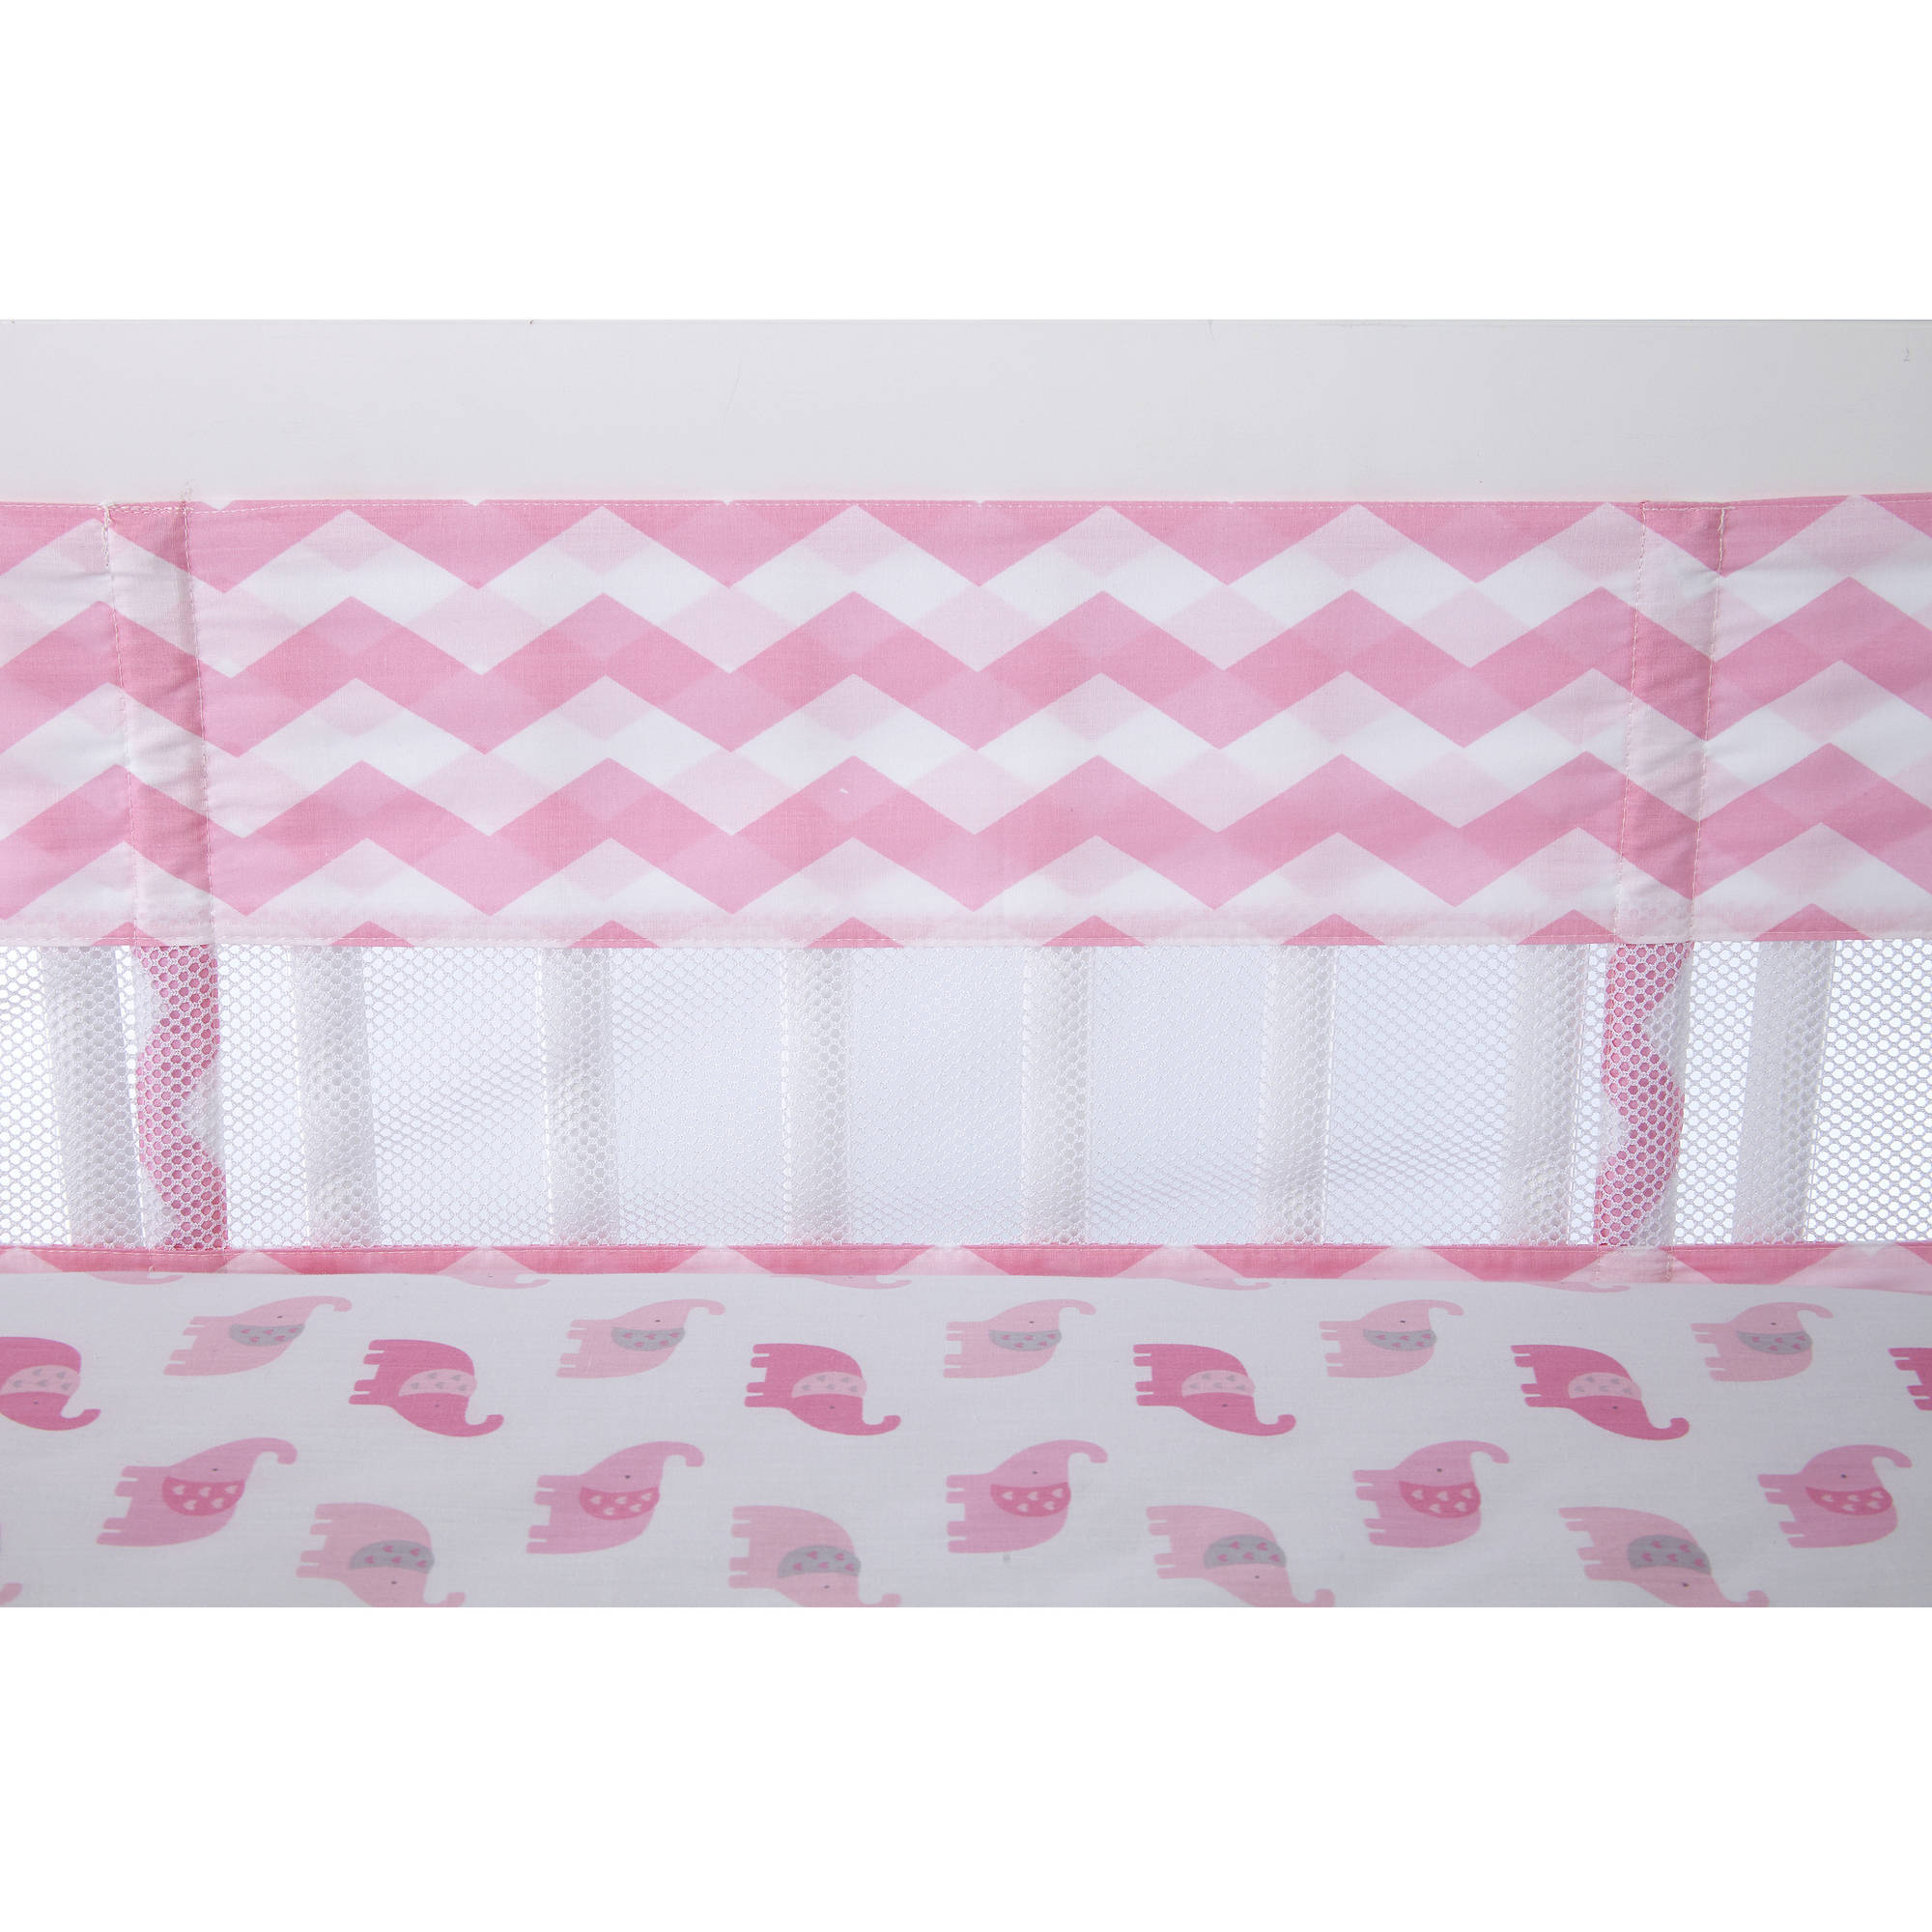 Little Love Secure Me Crib Liner, Pink Chevron Print